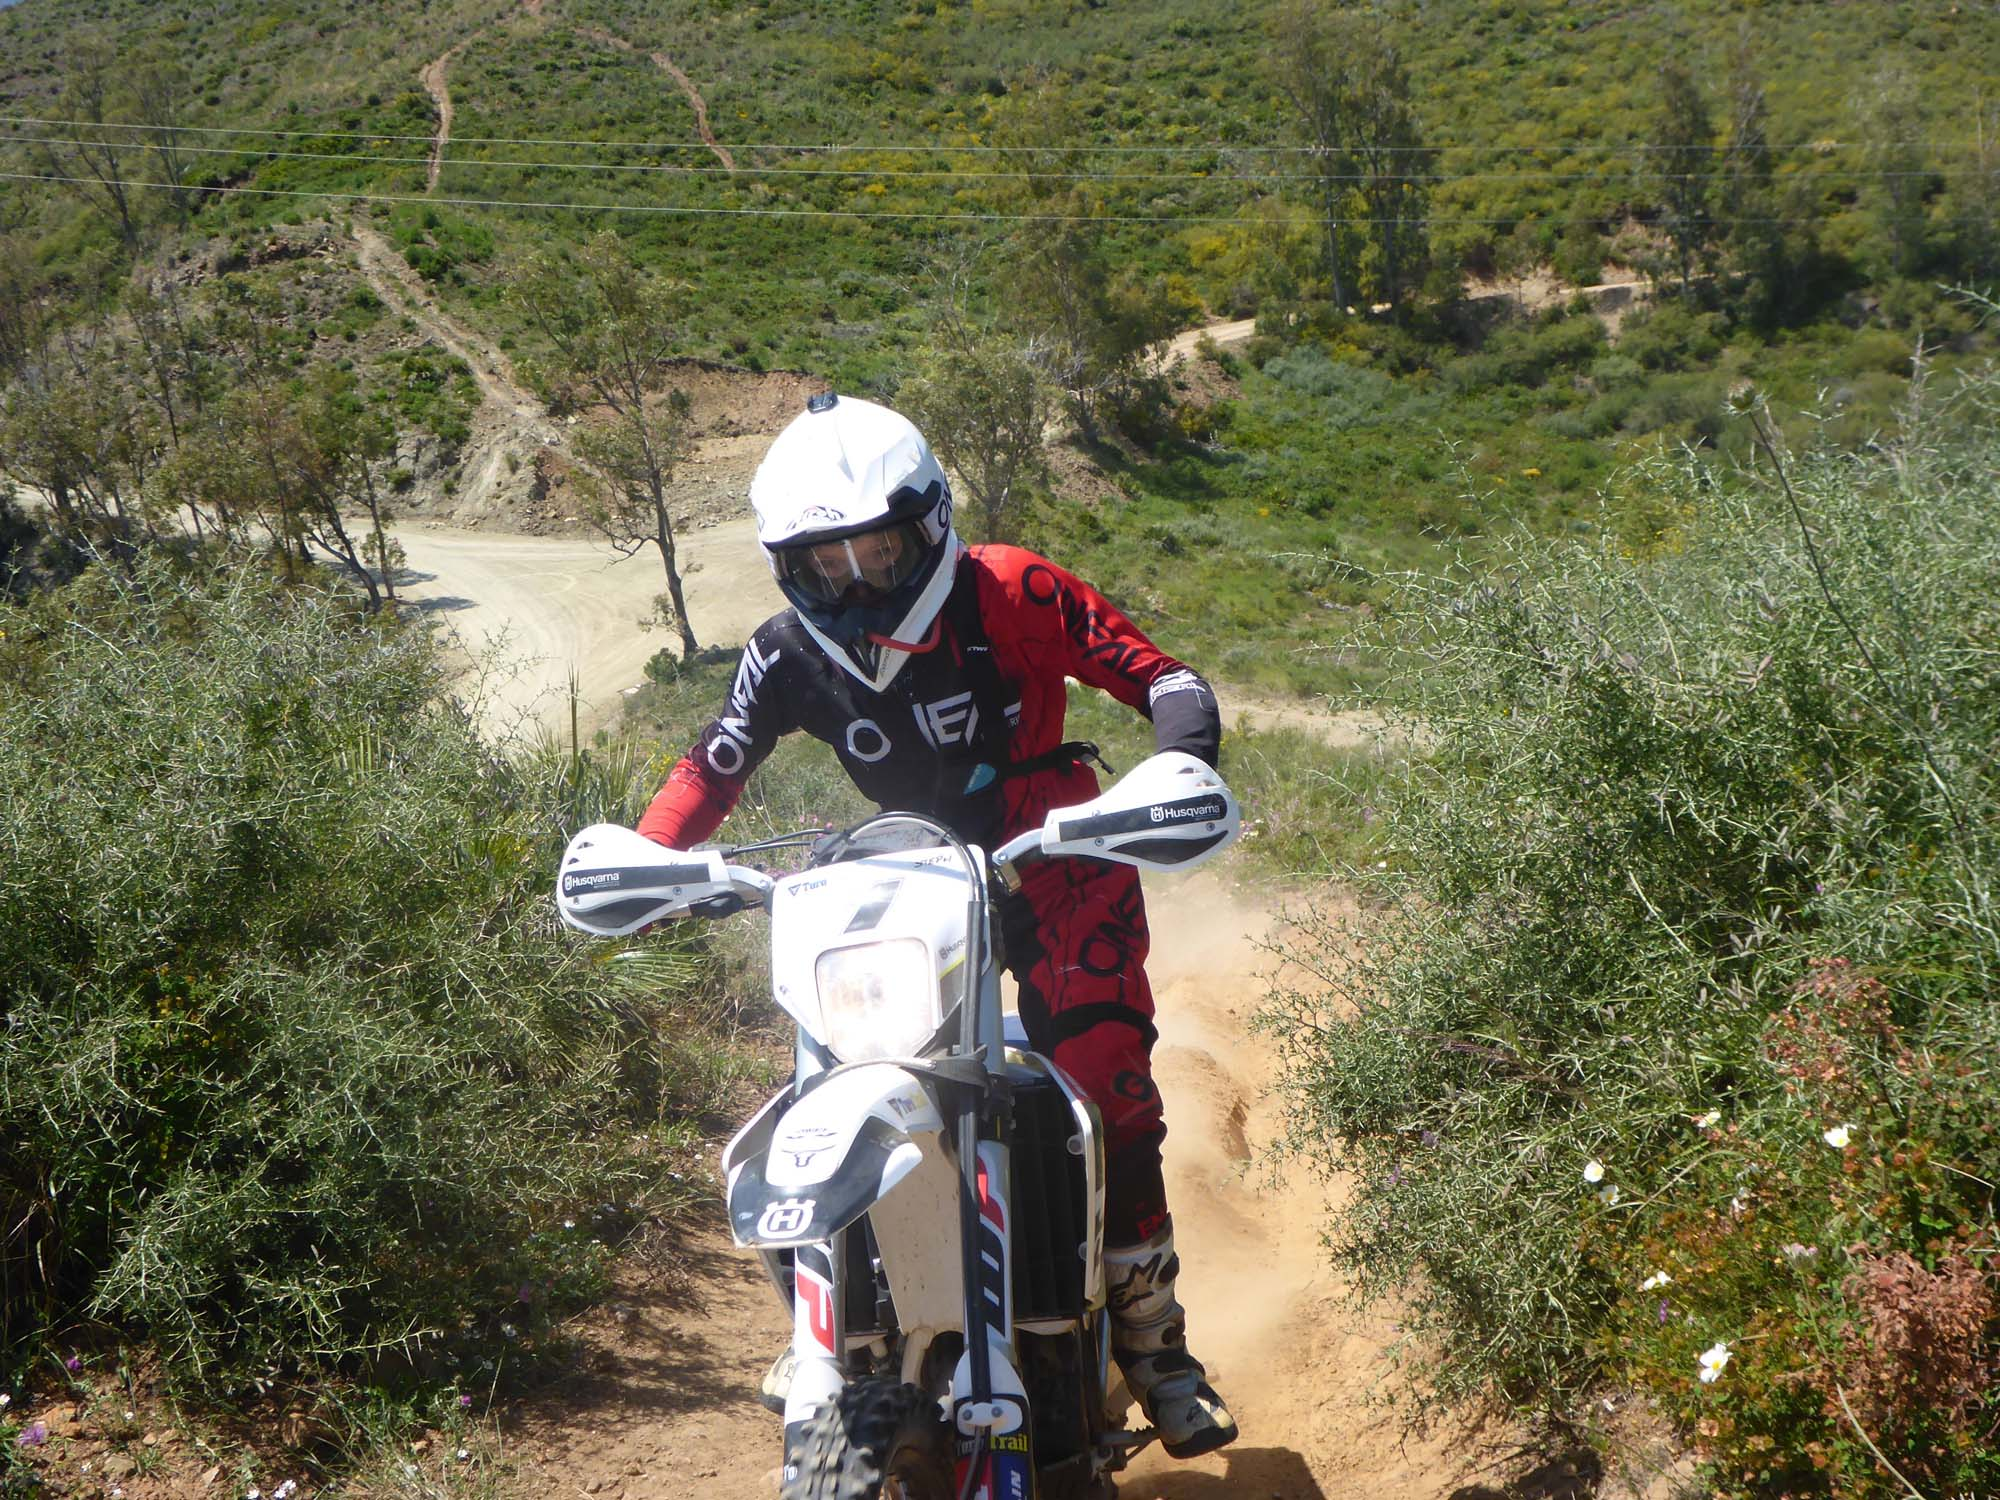 off-road motorcycle tours in Spain. Dirt Bike Holidays in Malaga